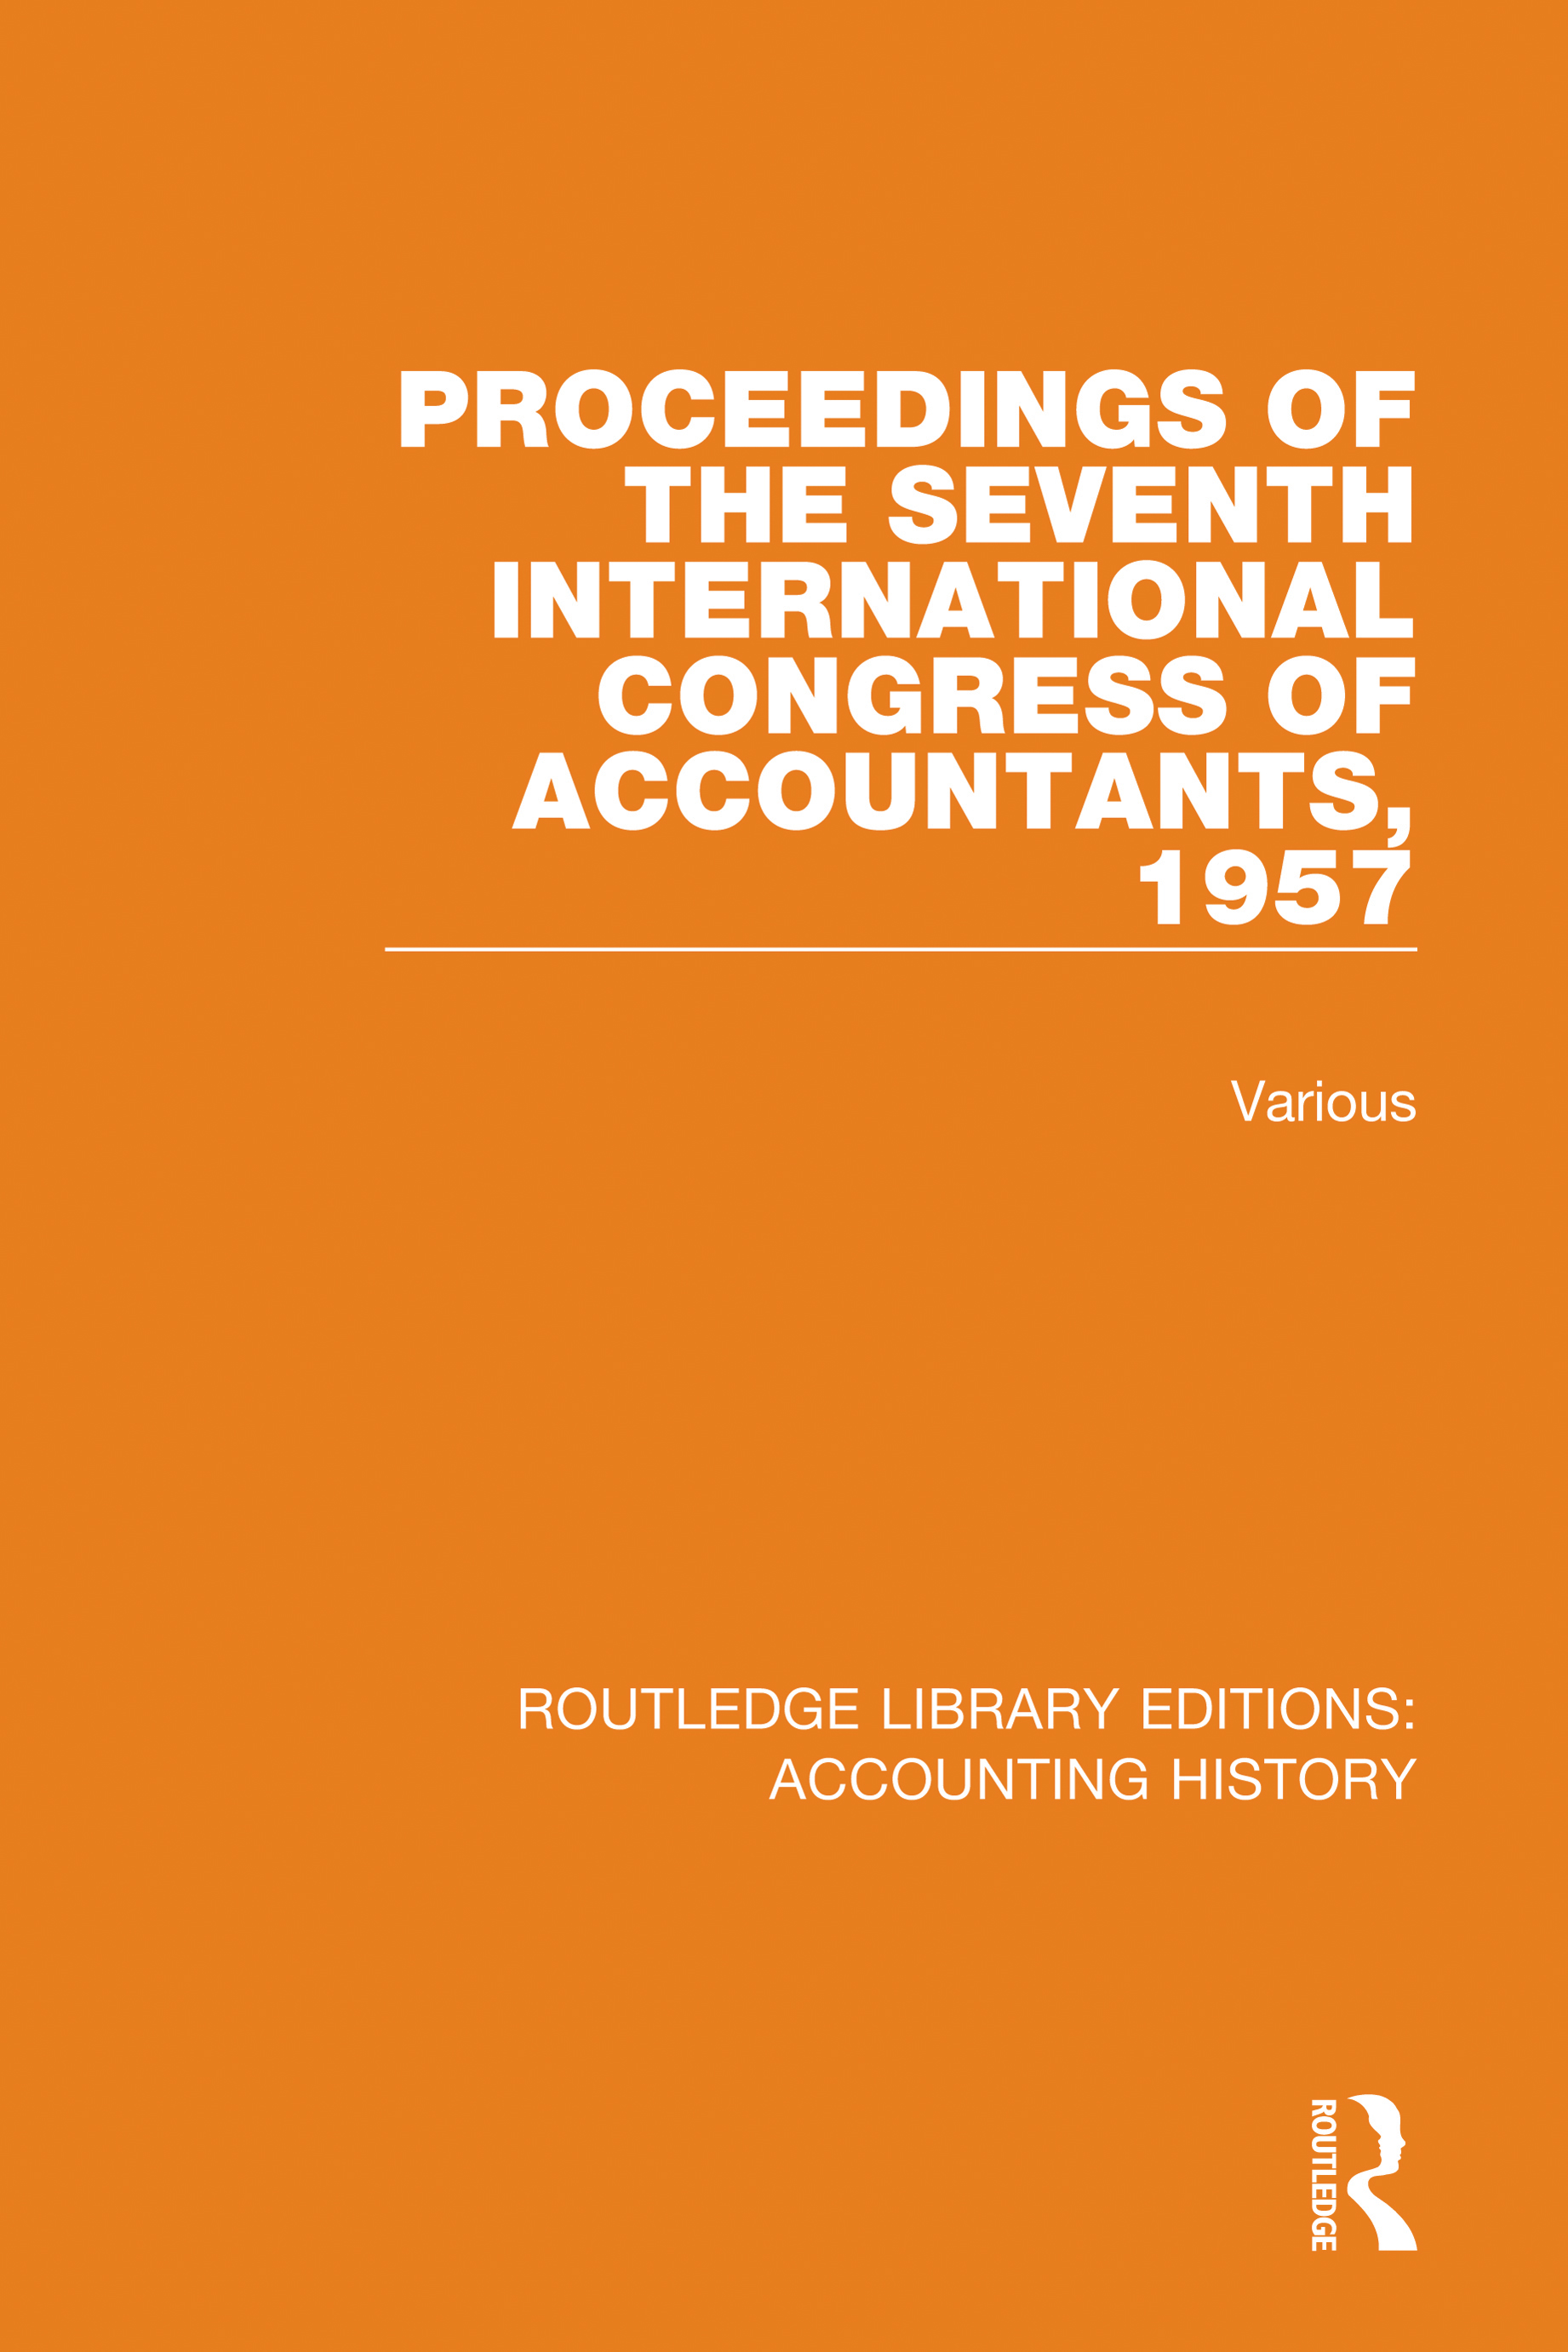 Proceedings of the Seventh International Congress of Accountants, 1957